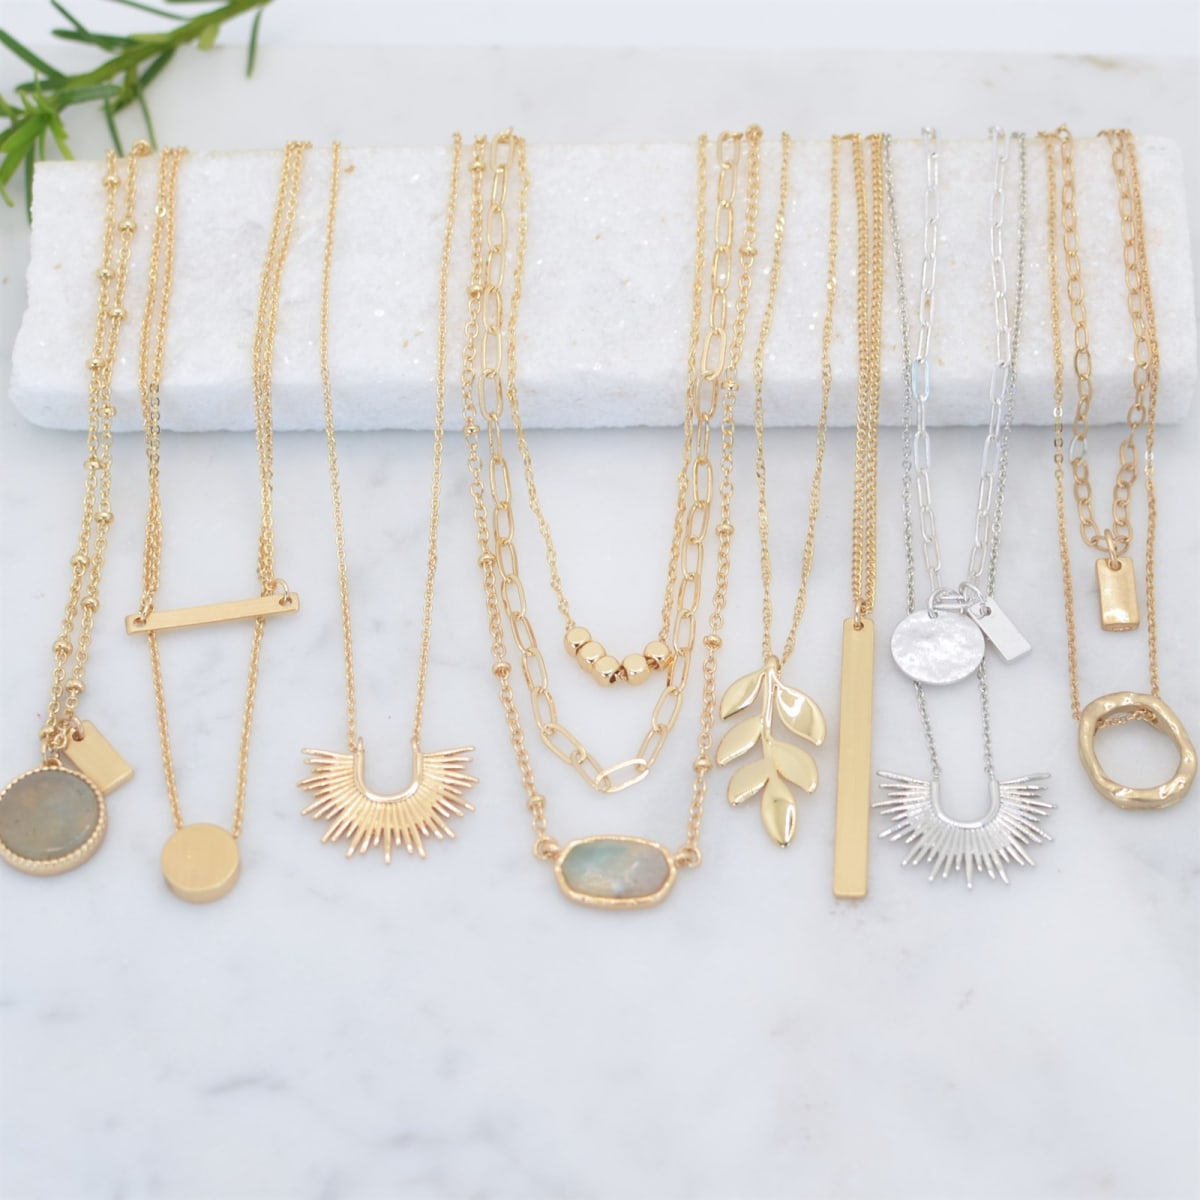 .99 Eye Catching Essentail Necklaces + Free shipping at Jane!